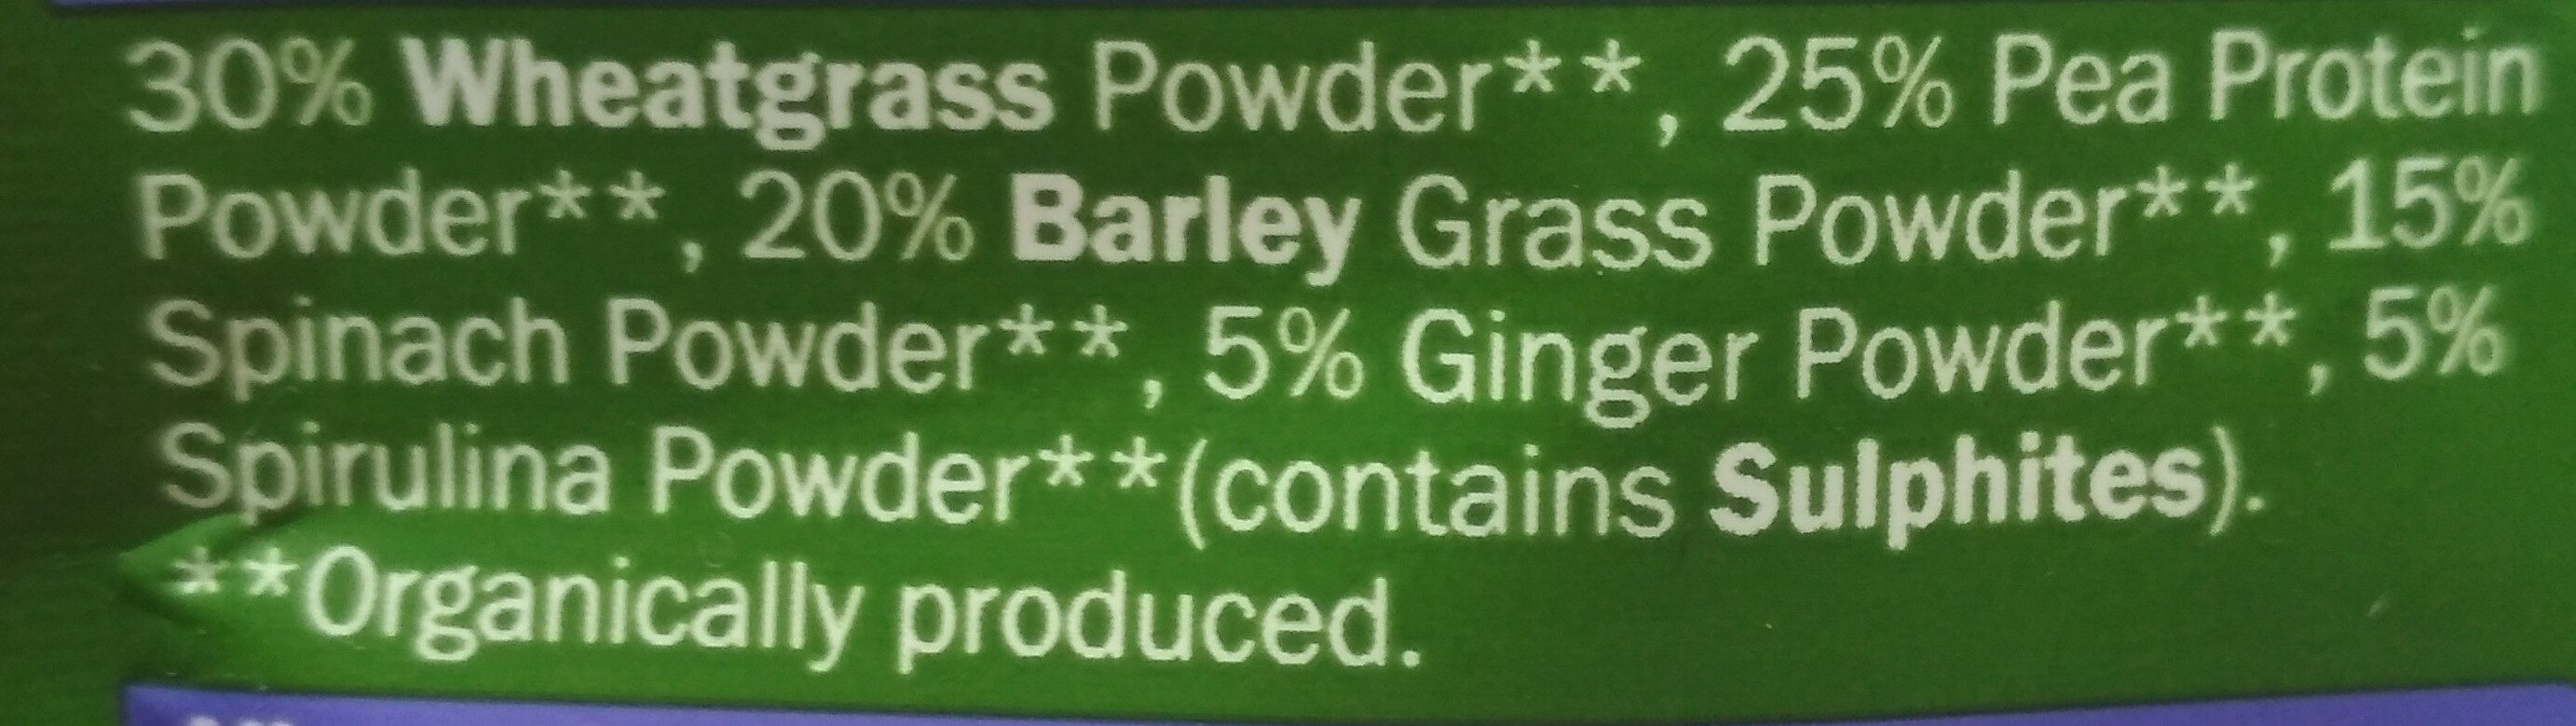 Supergreens blend - Ingredients